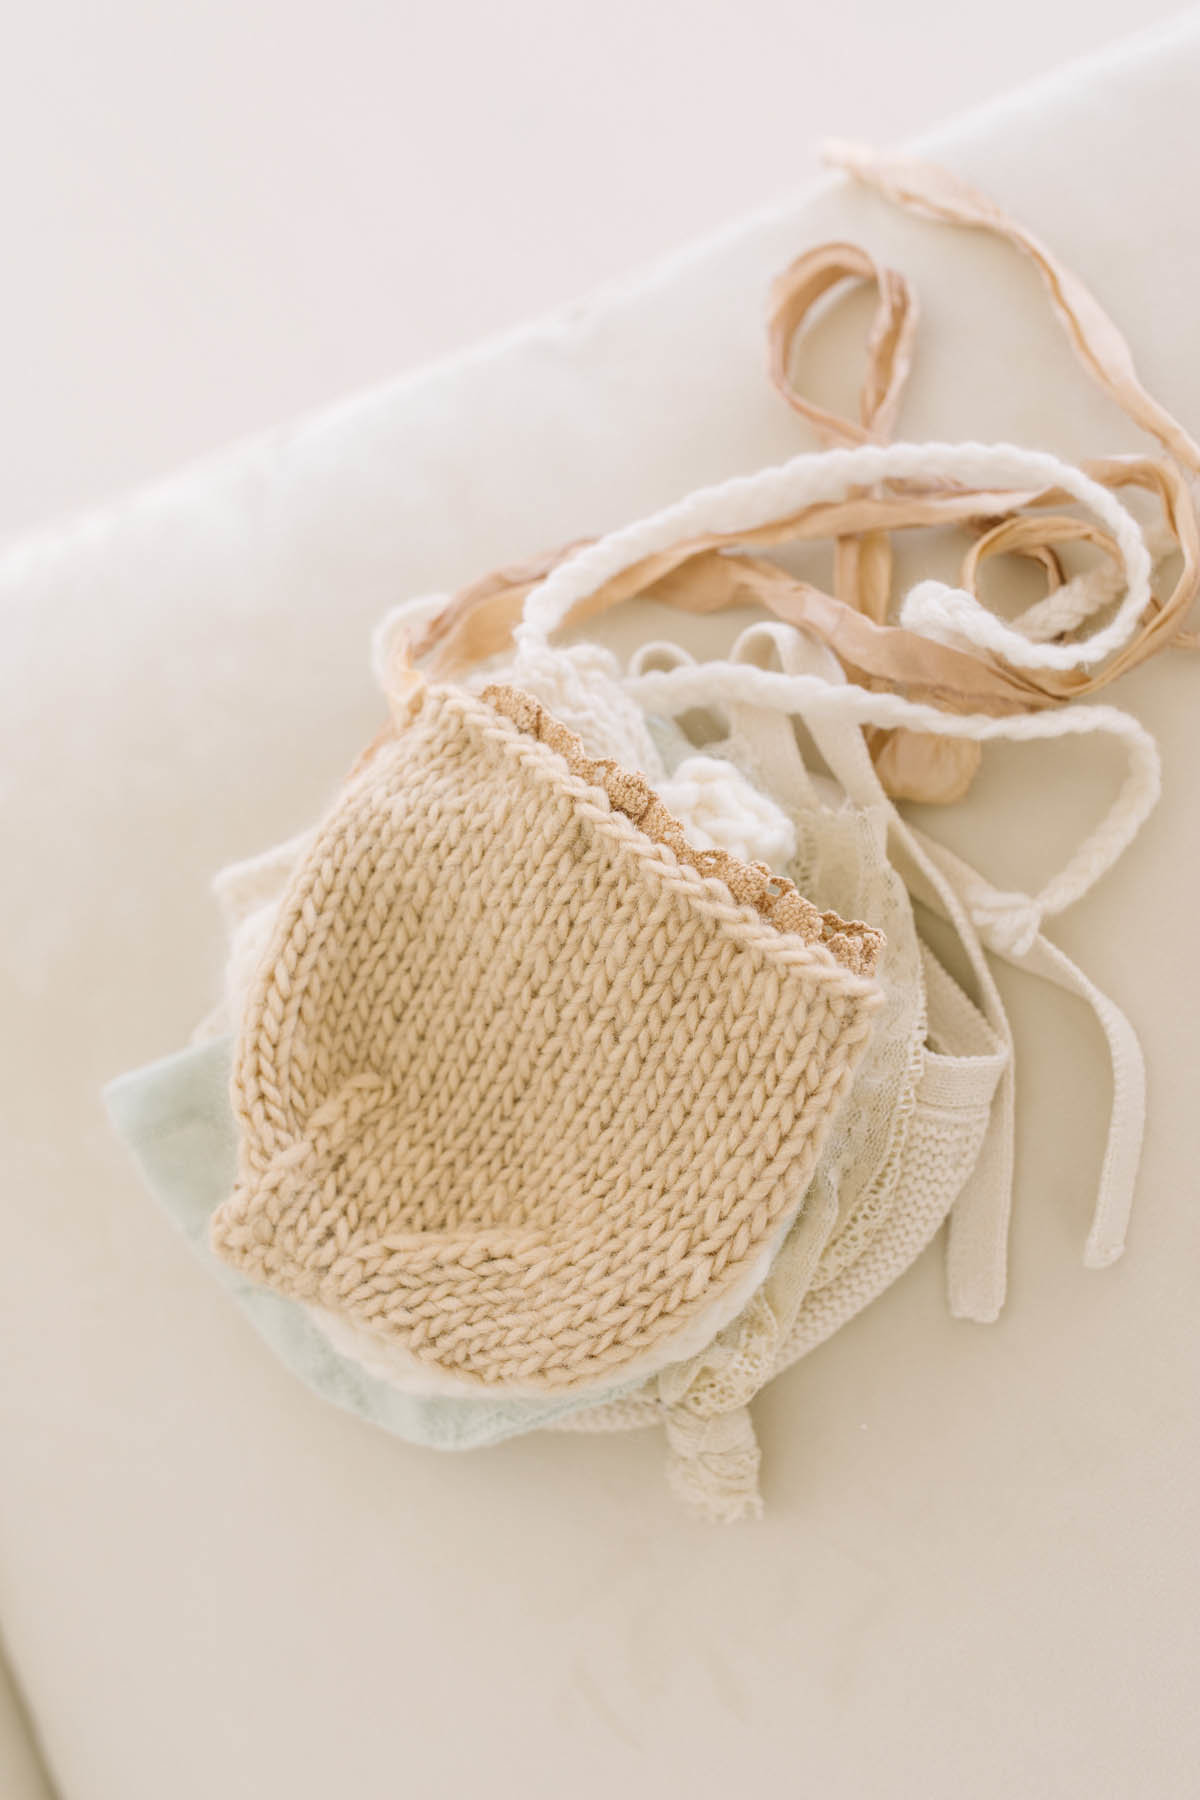 Laurie Baker has a large collection of baby bonnets and hats for her newborn sessions